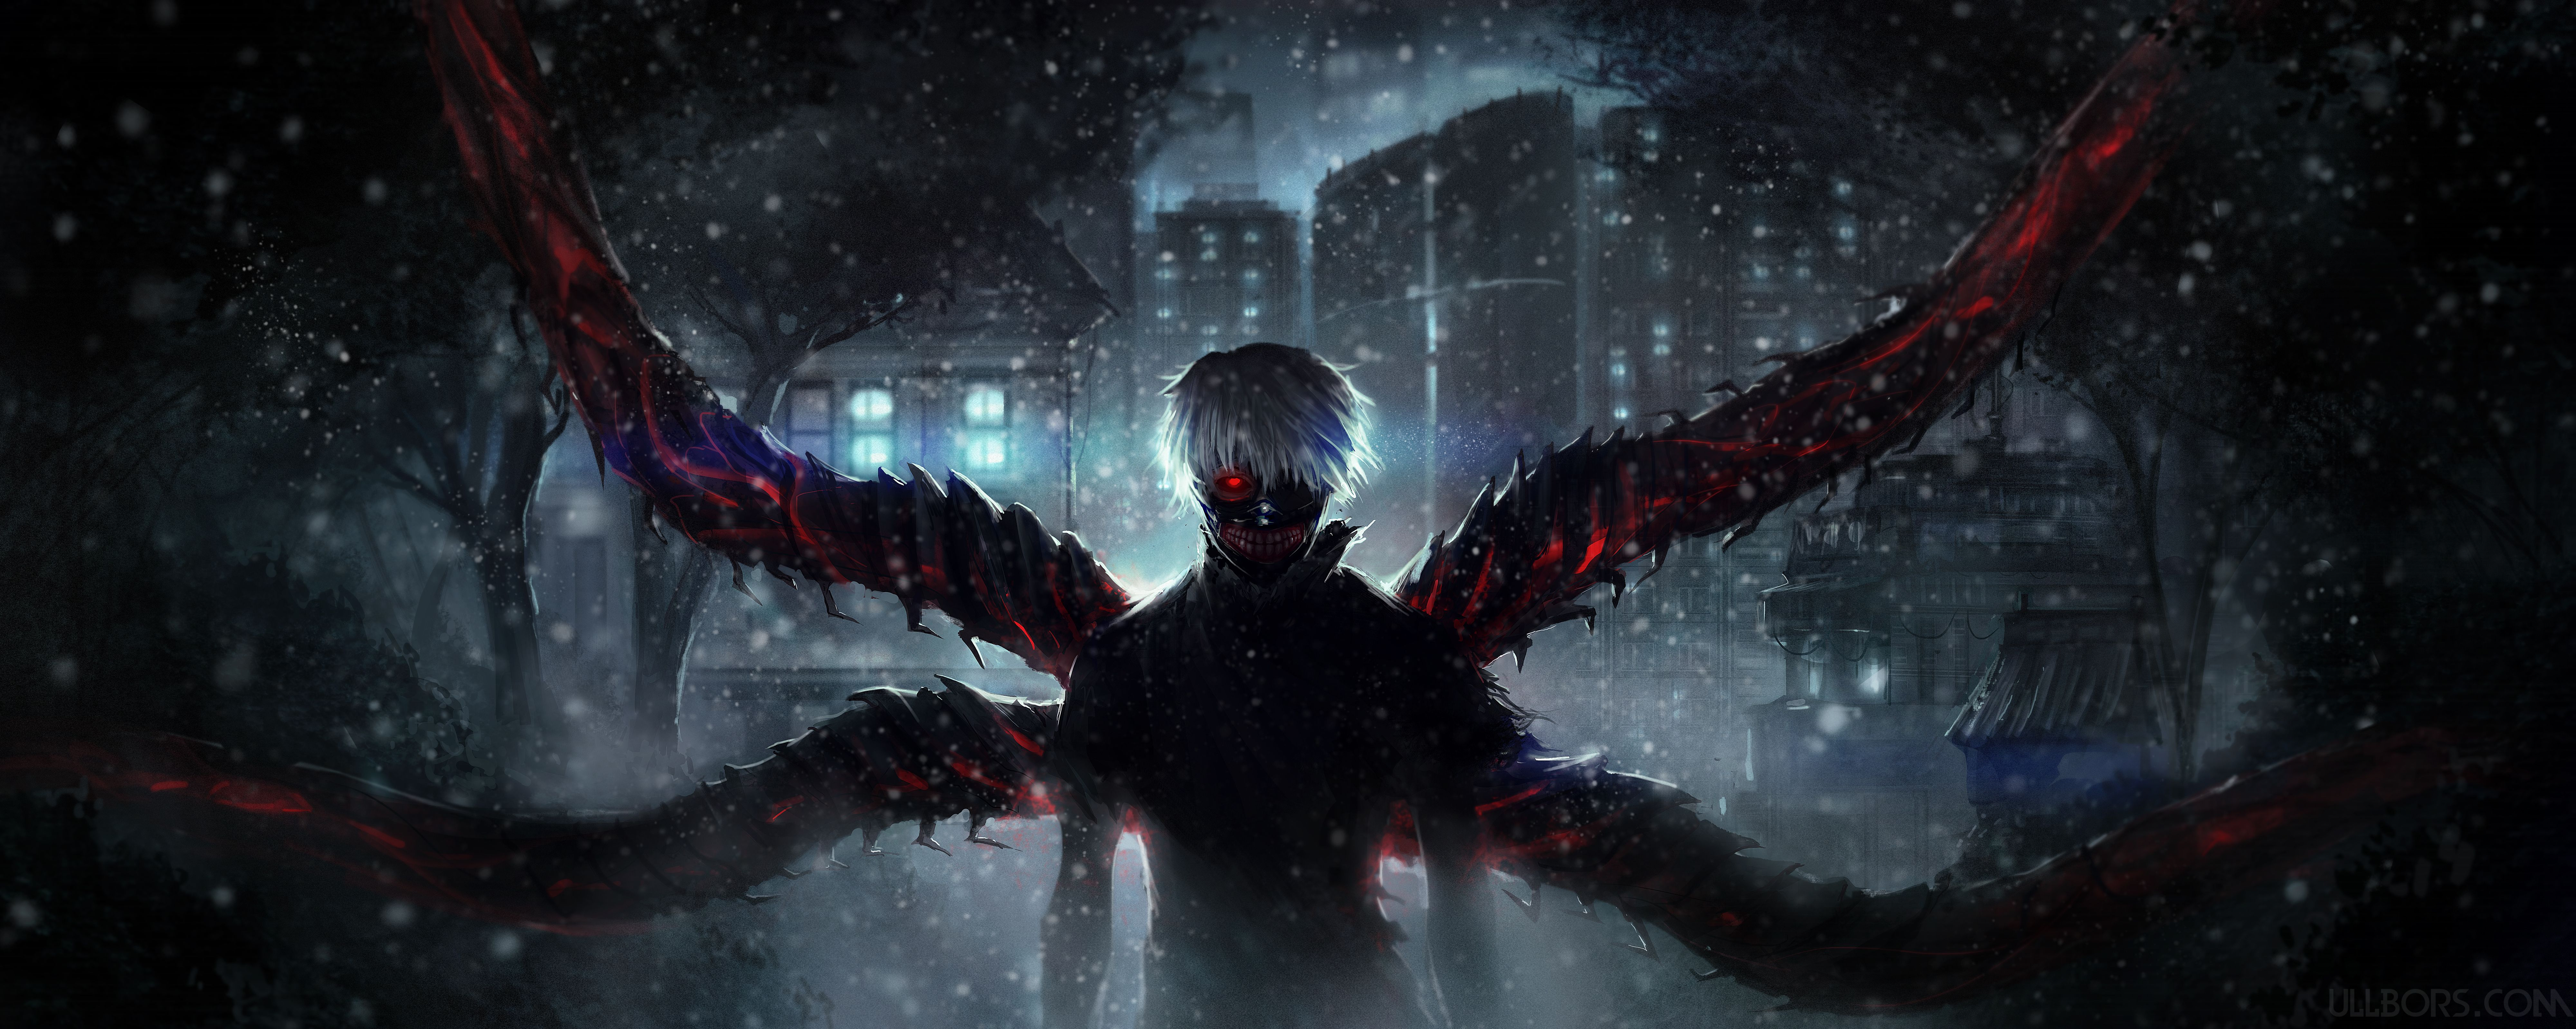 Tokyo Ghoul Wallpapers Top Free Tokyo Ghoul Backgrounds